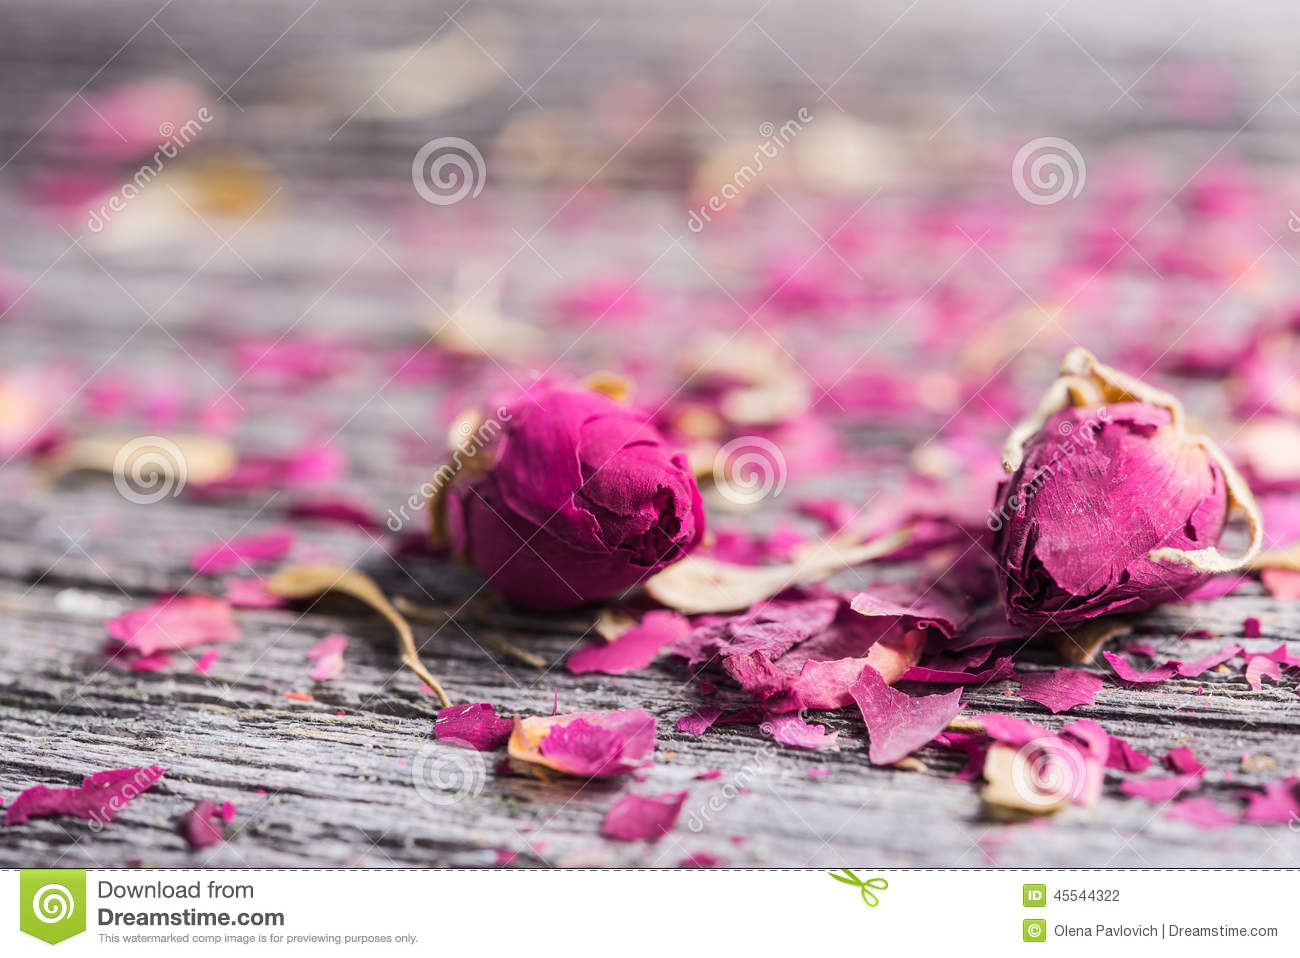 Two rose buds and petals on wooden background